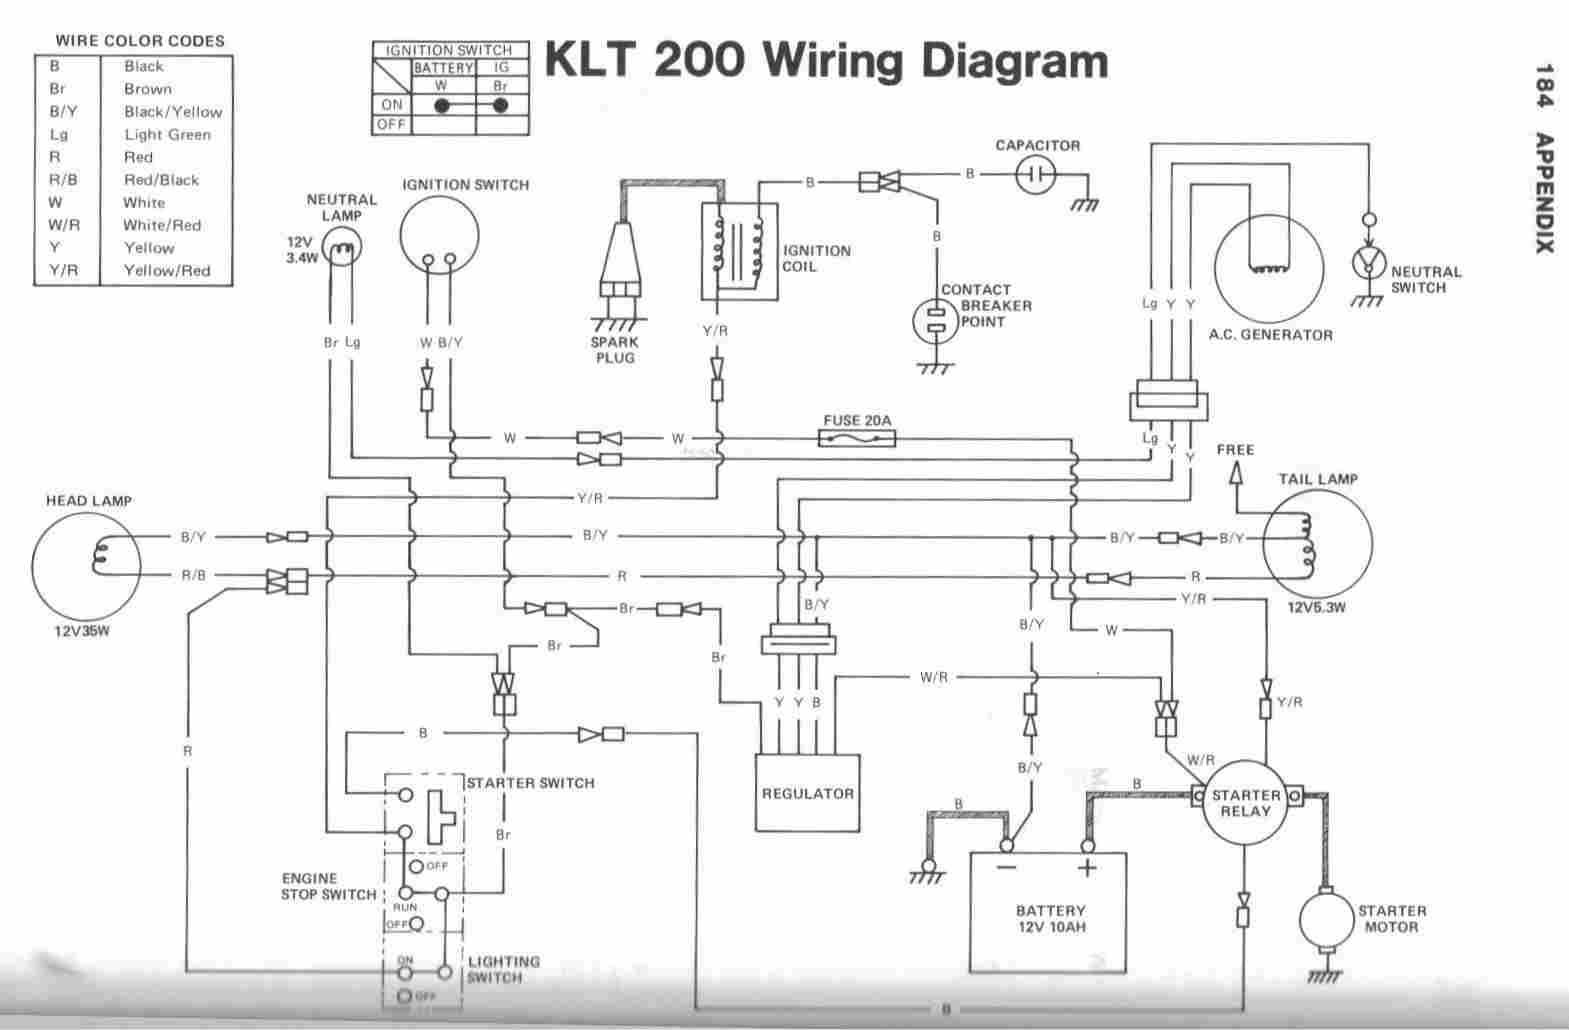 2869034594ce054a636782e5c44b61b4 residential electrical wiring diagrams pdf easy routing cool difference between wiring diagram and circuit diagram at sewacar.co